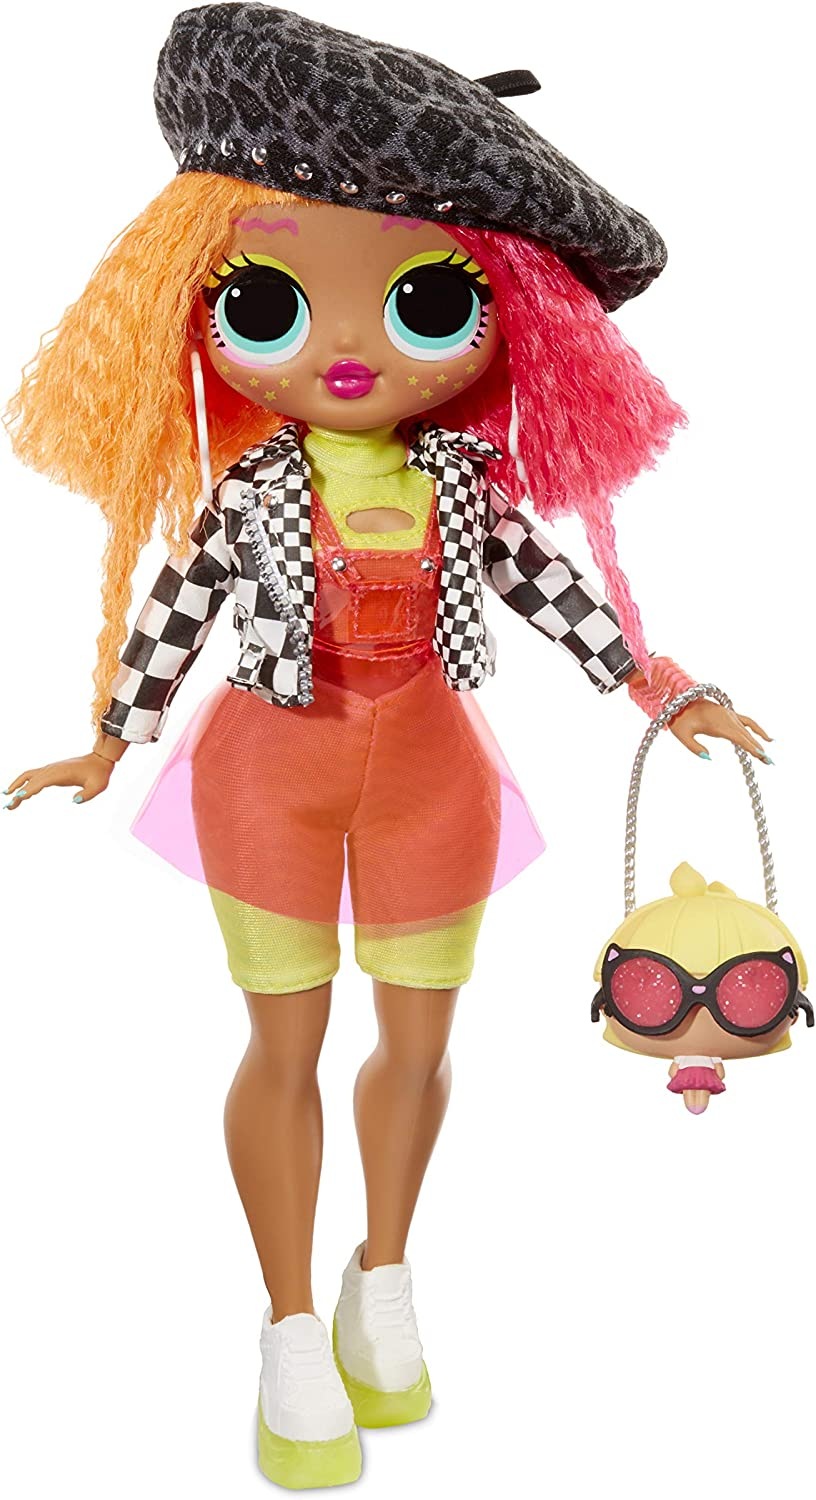 Lol Surprise Omg Neonlicious Fashion Doll With 20 Surprises